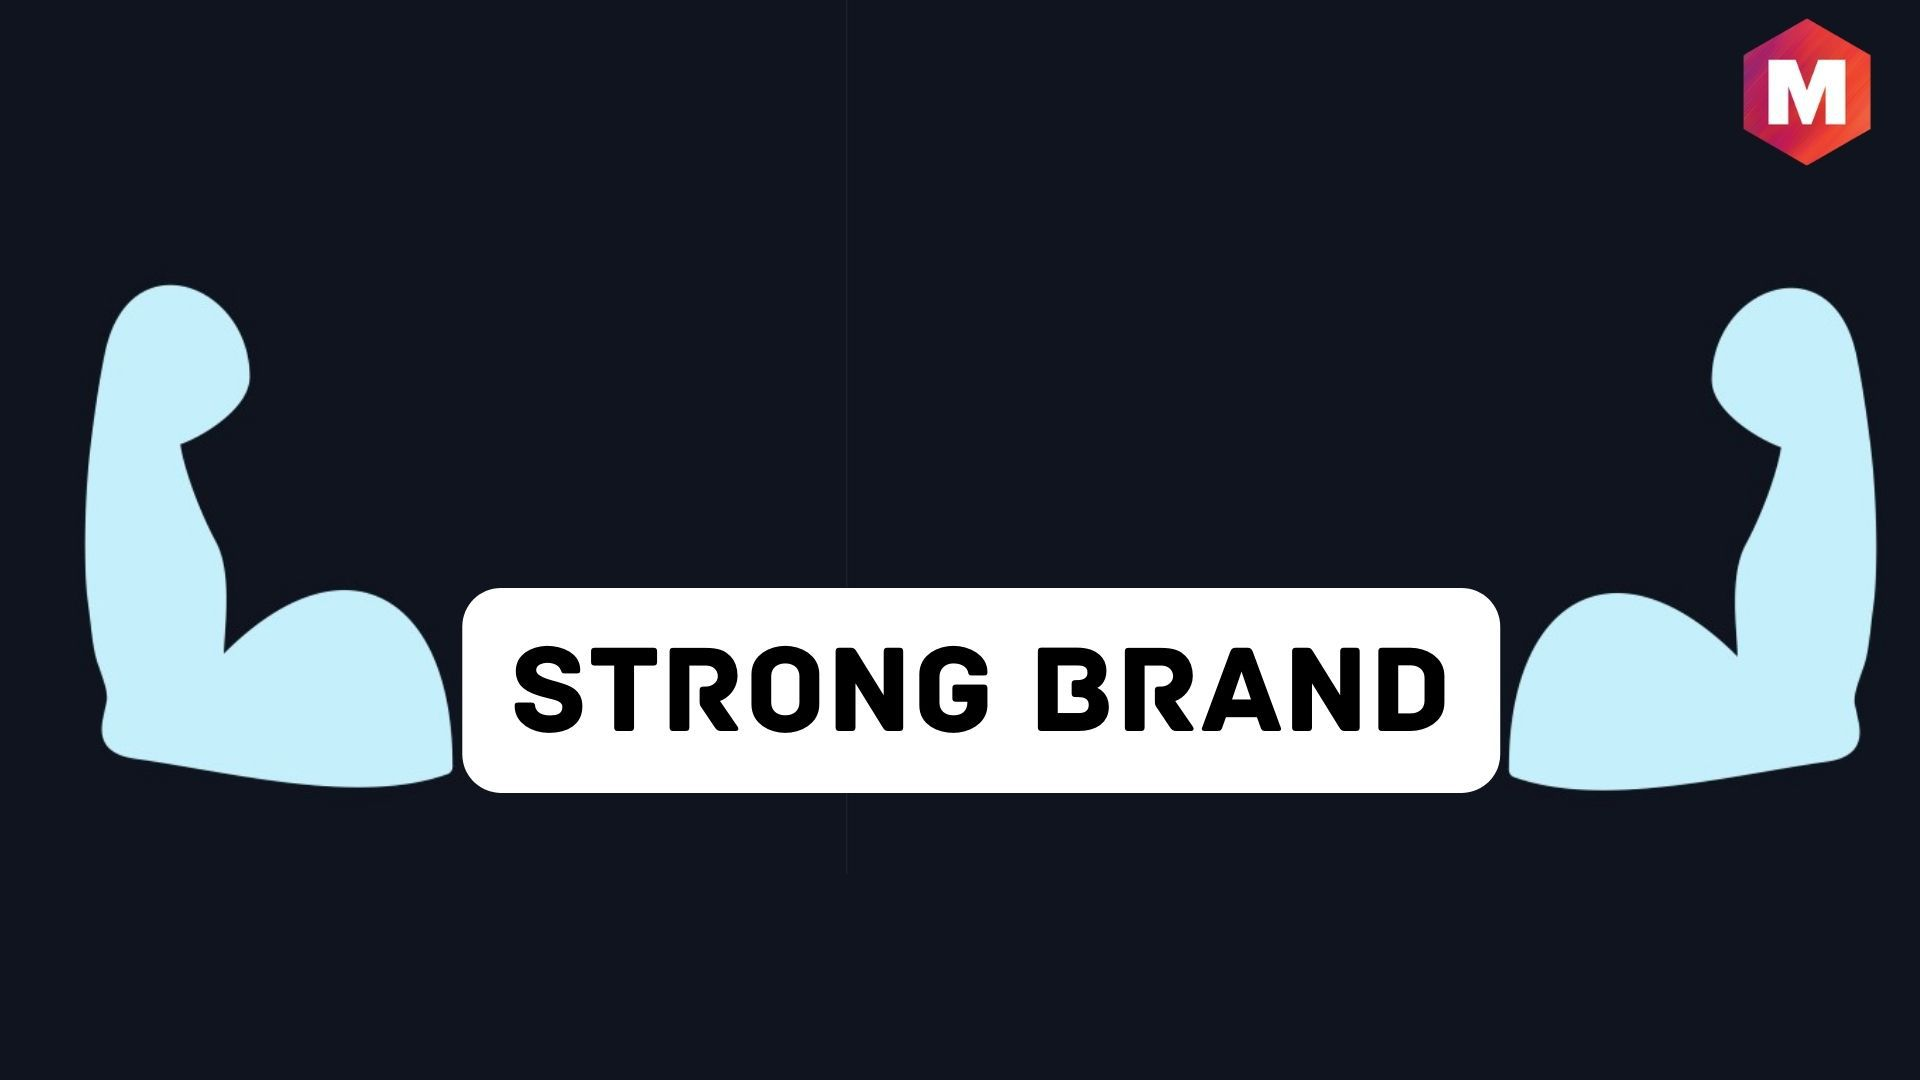 Top 13 Branding Lessons to Make a Strong Brand